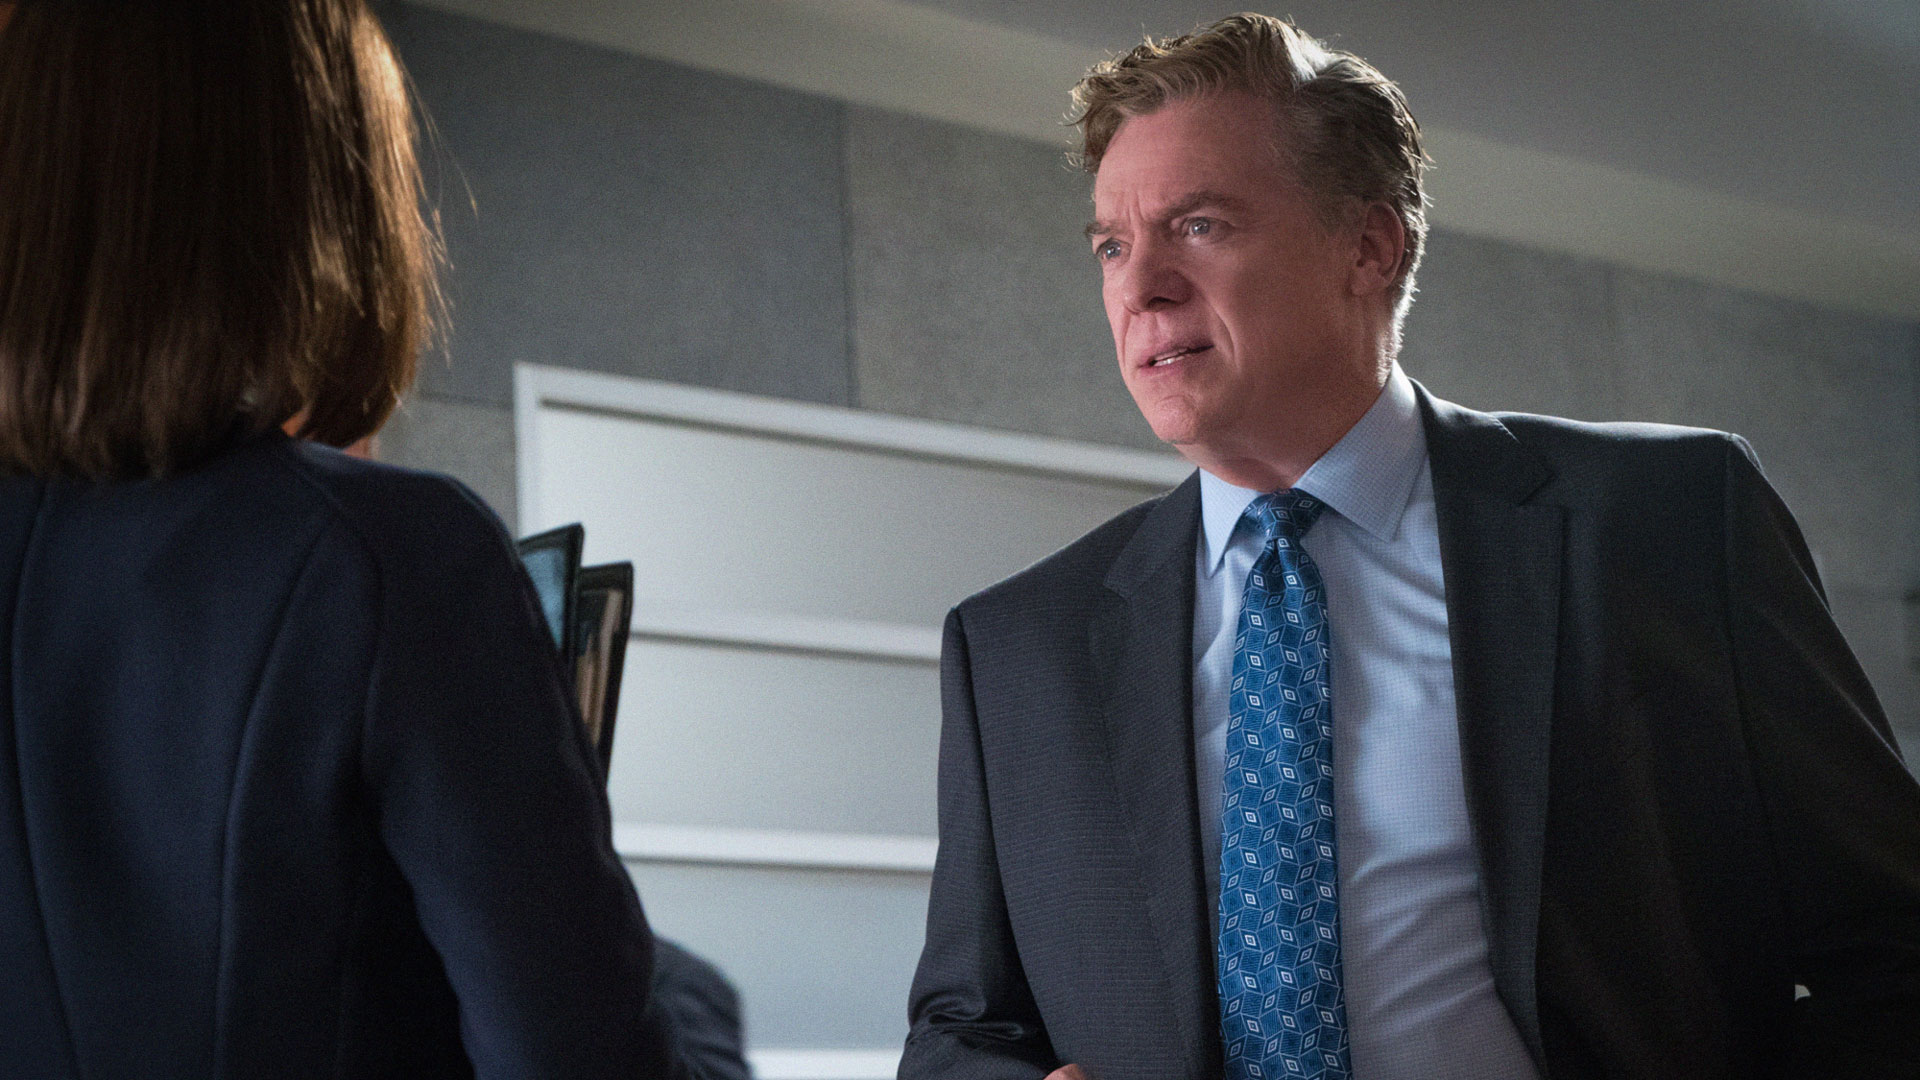 Julianna Margulies as Alicia Florrick and Christopher McDonald as Judge Schakowsky